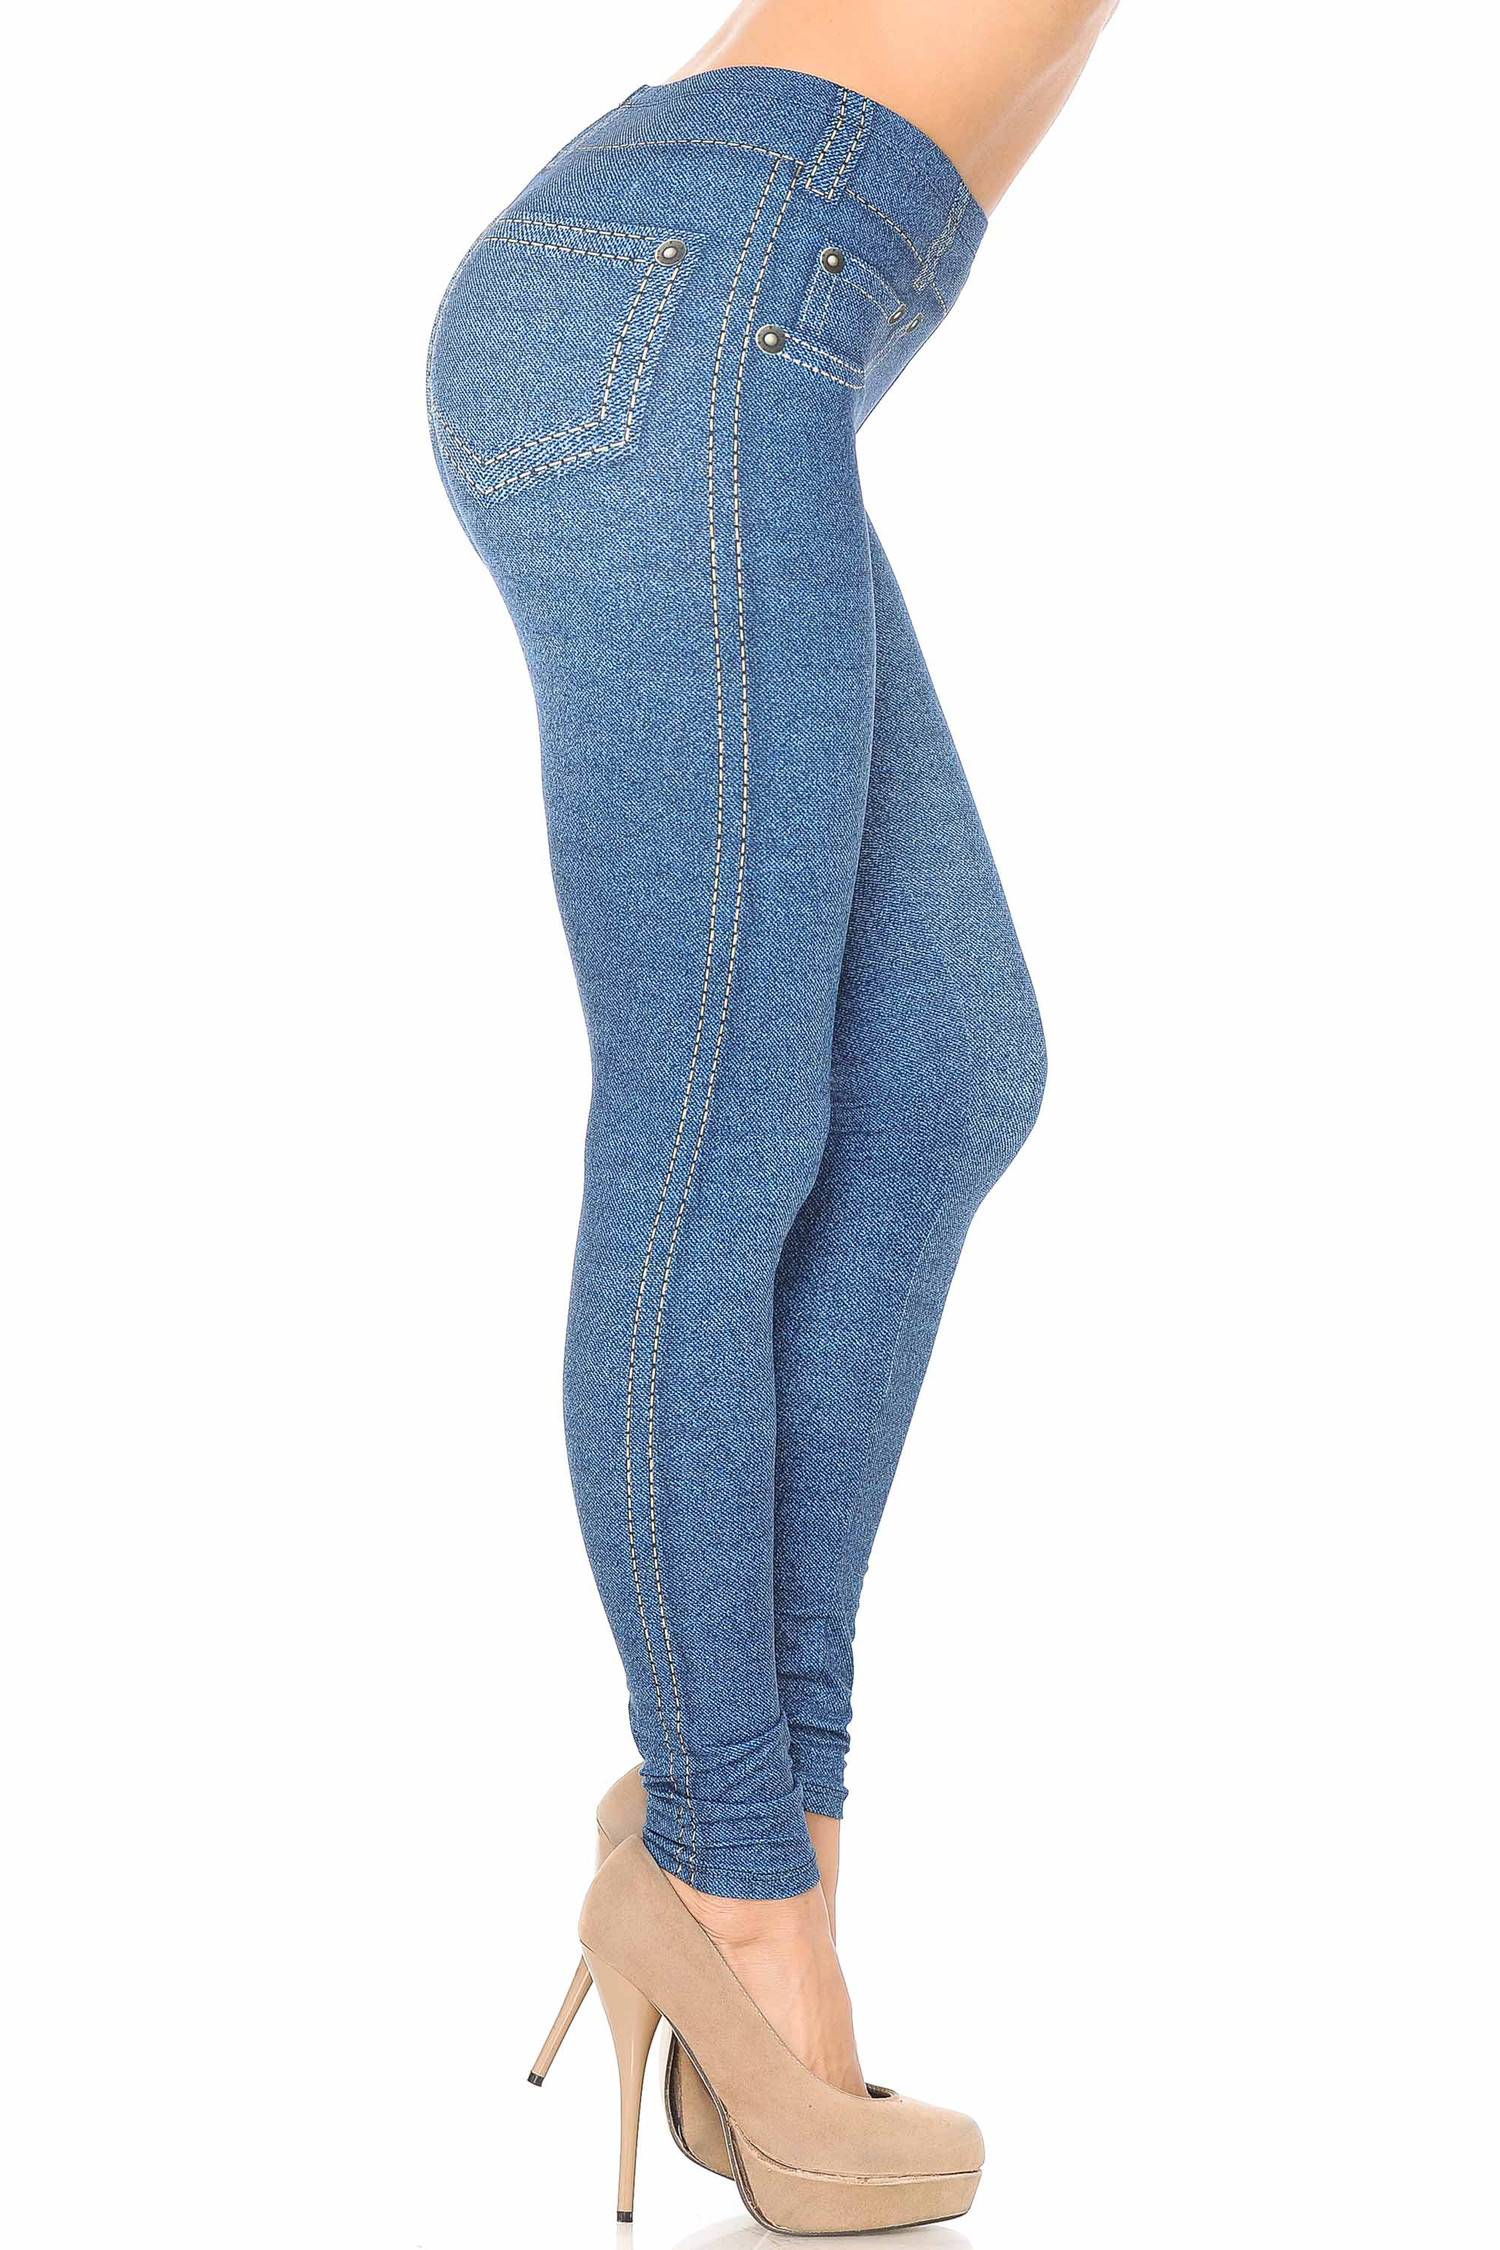 Creamy Soft Dark Blue Denim Jean Leggings - By USA Fashion™